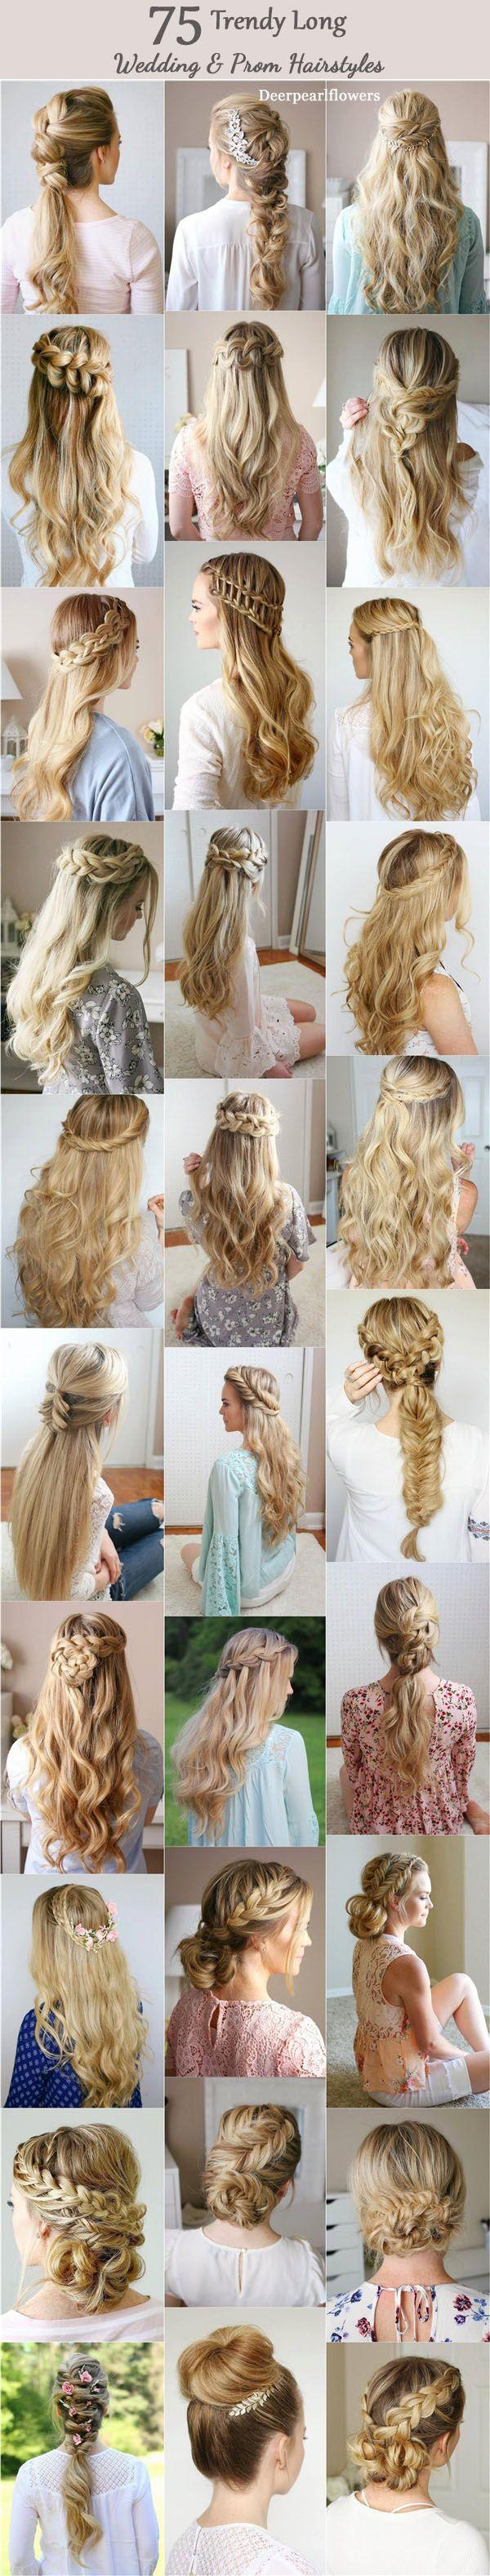 Mariage - 75 Trendy Long Wedding & Prom Hairstyles To Try In 2017